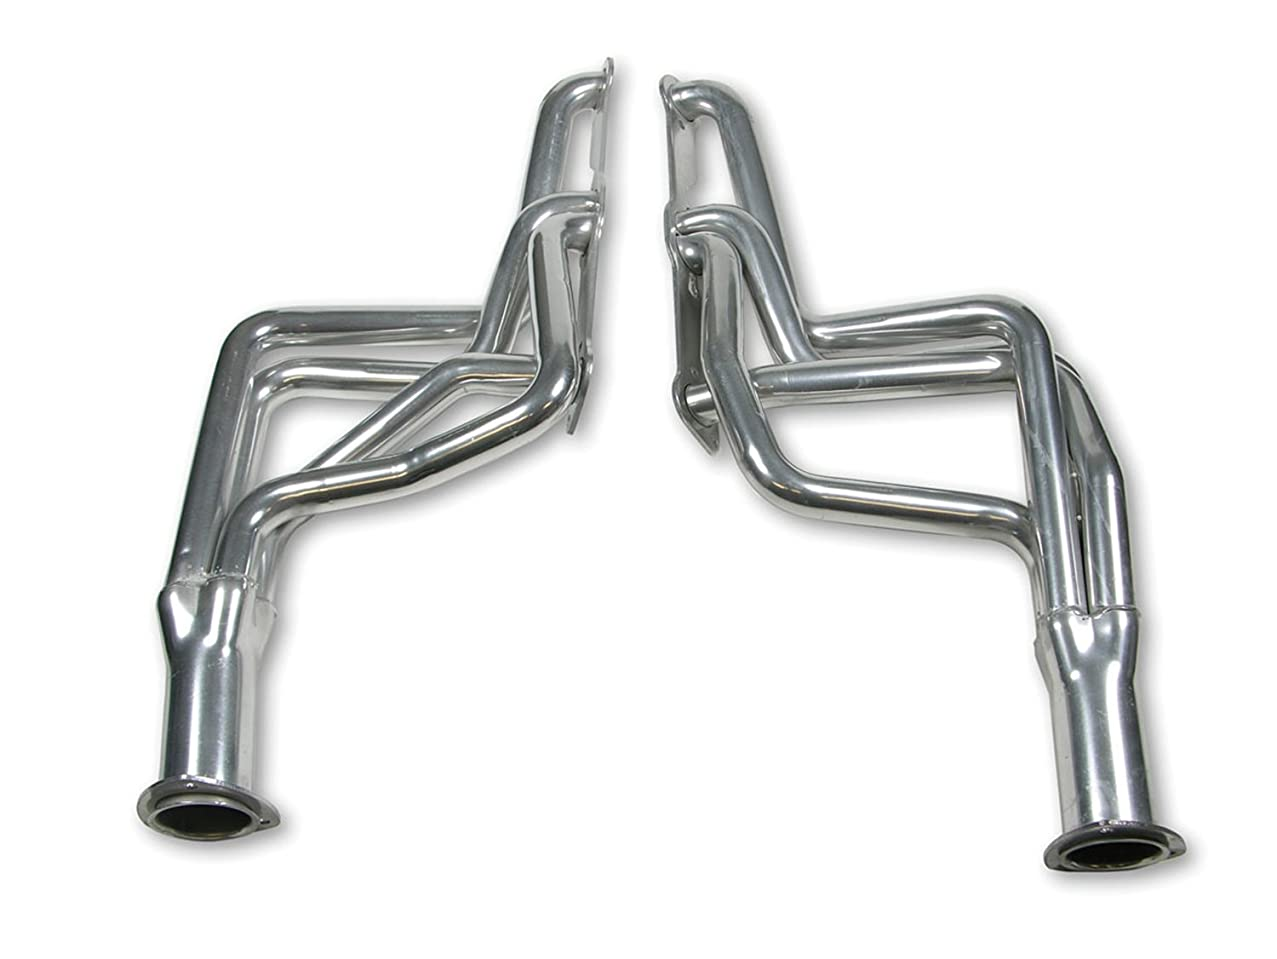 Flowtech 31170FLT Ceramic Headers